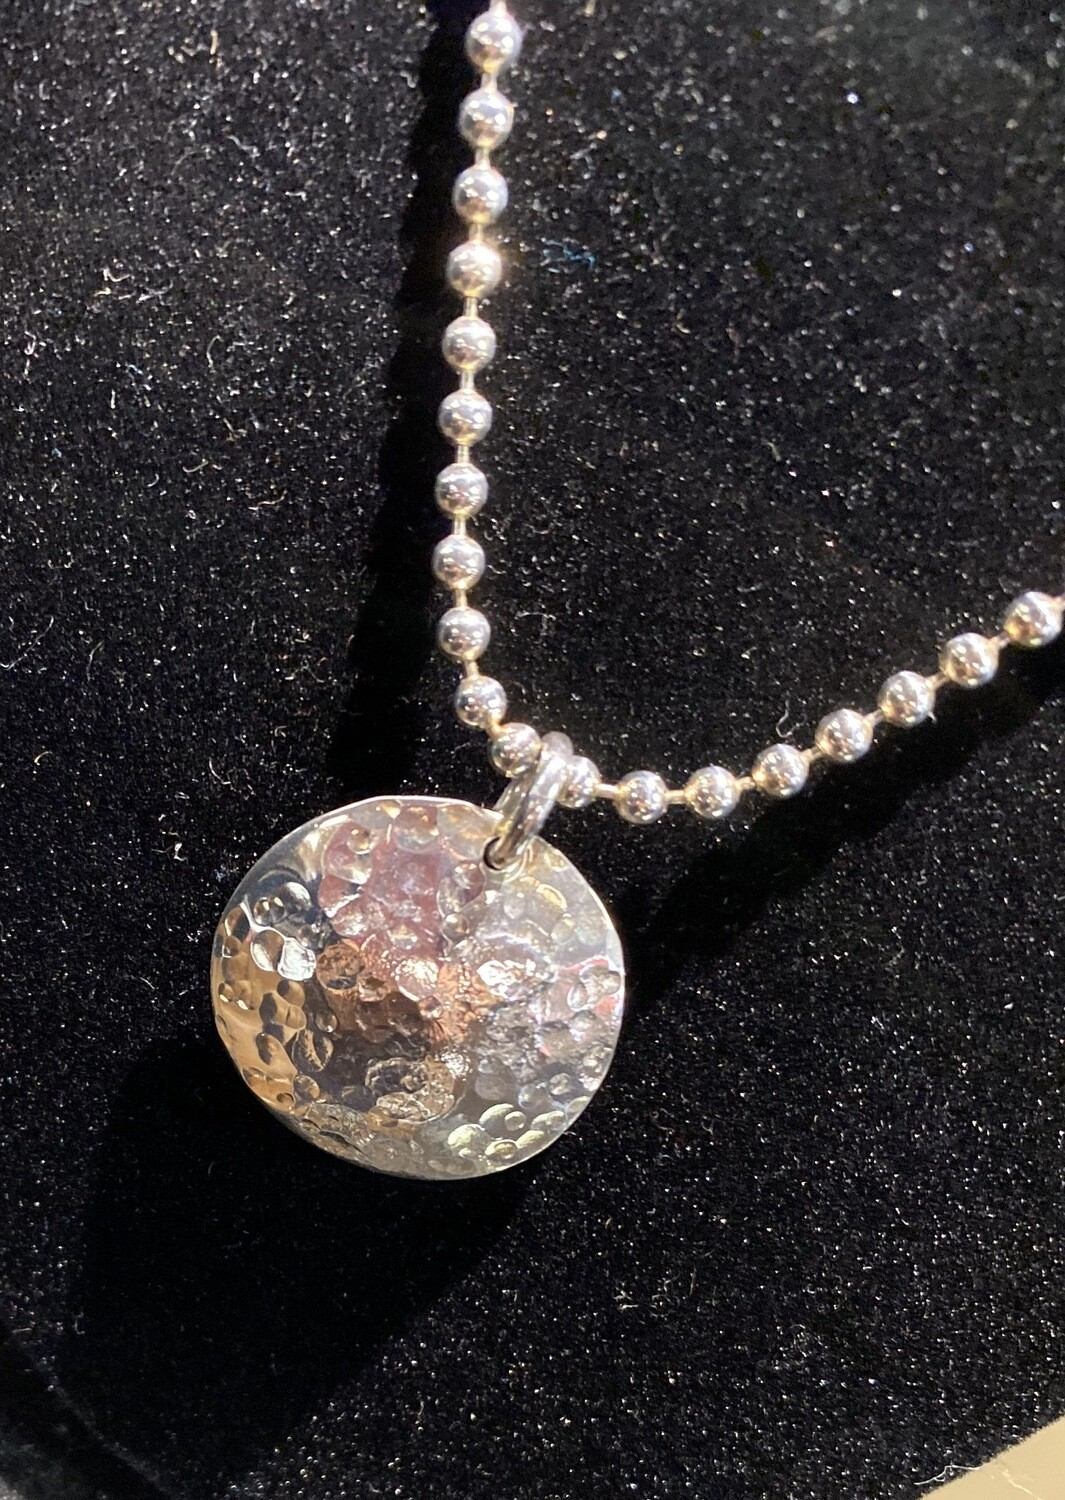 Carlee Hand Hammered Sterling Silver Disk i2 With Sterling Ball Chain Necklace